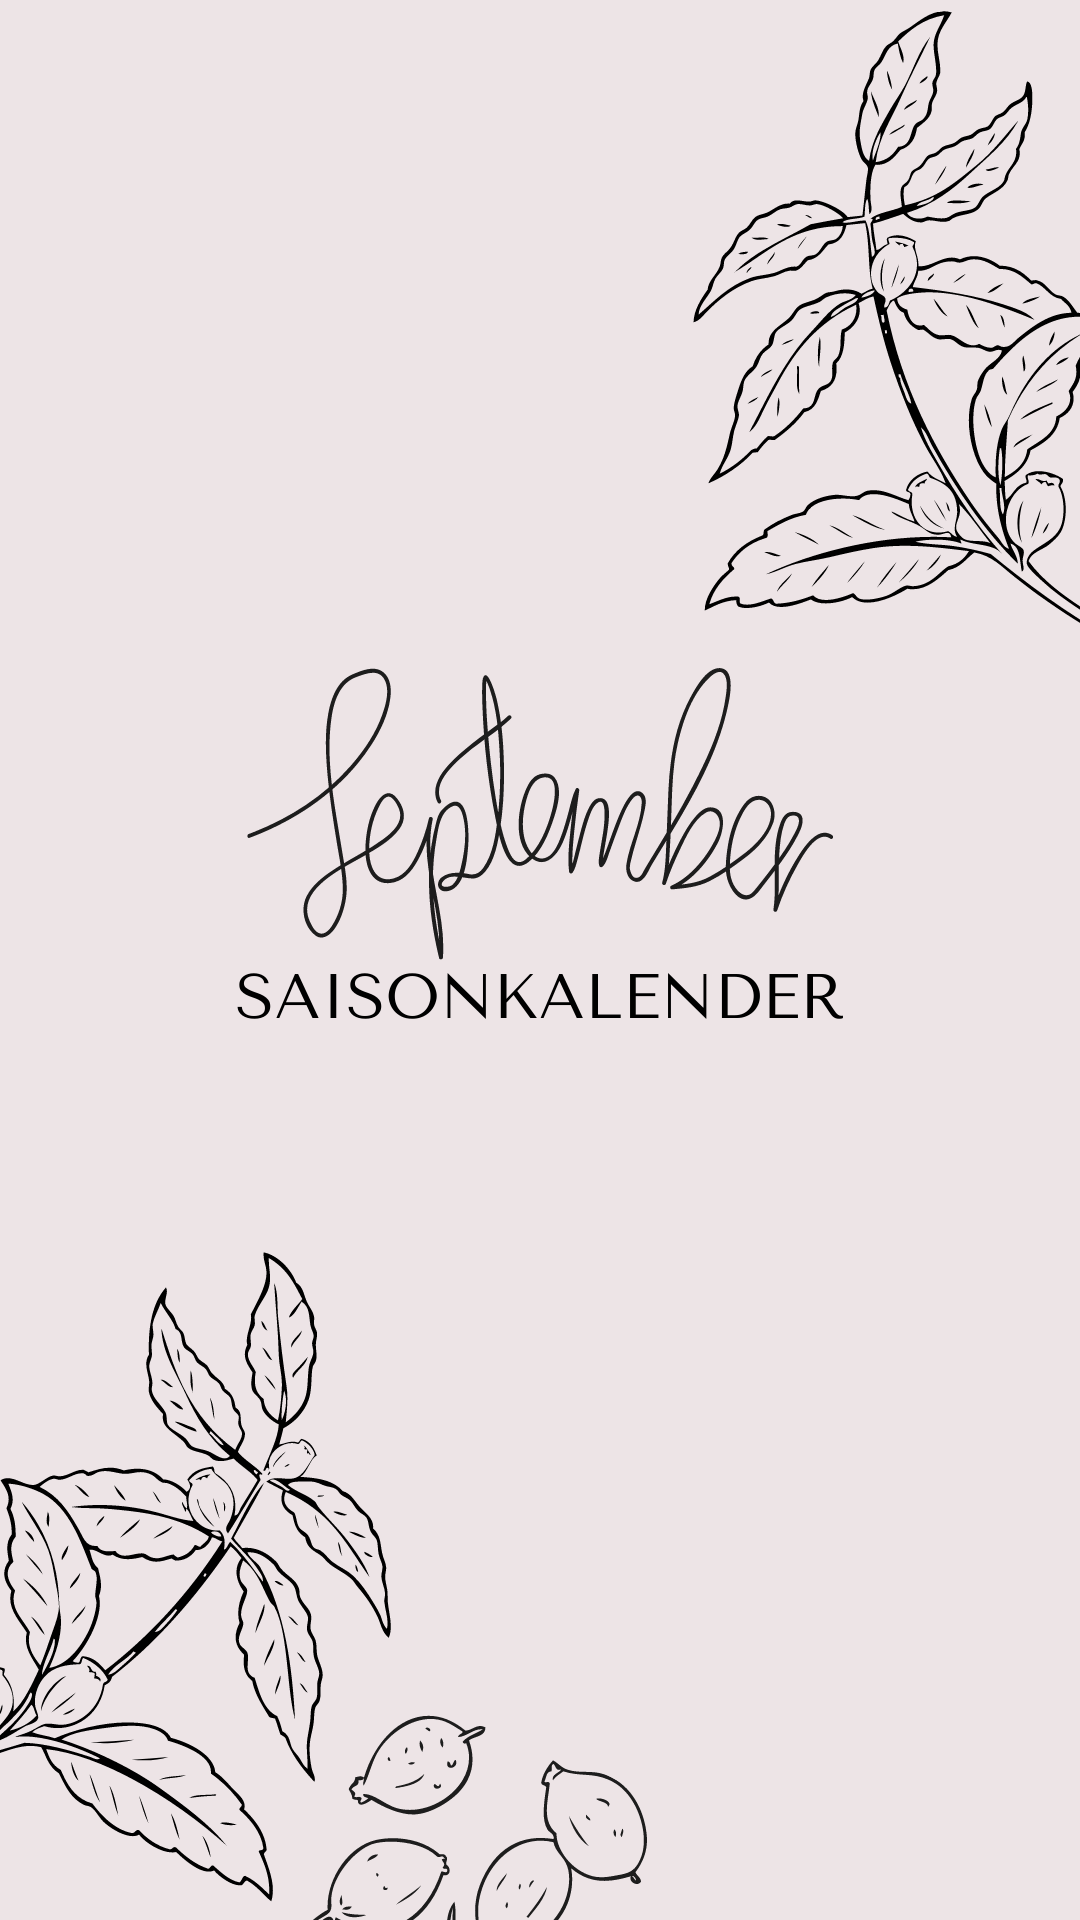 Saisonkalender September bäckerina.de